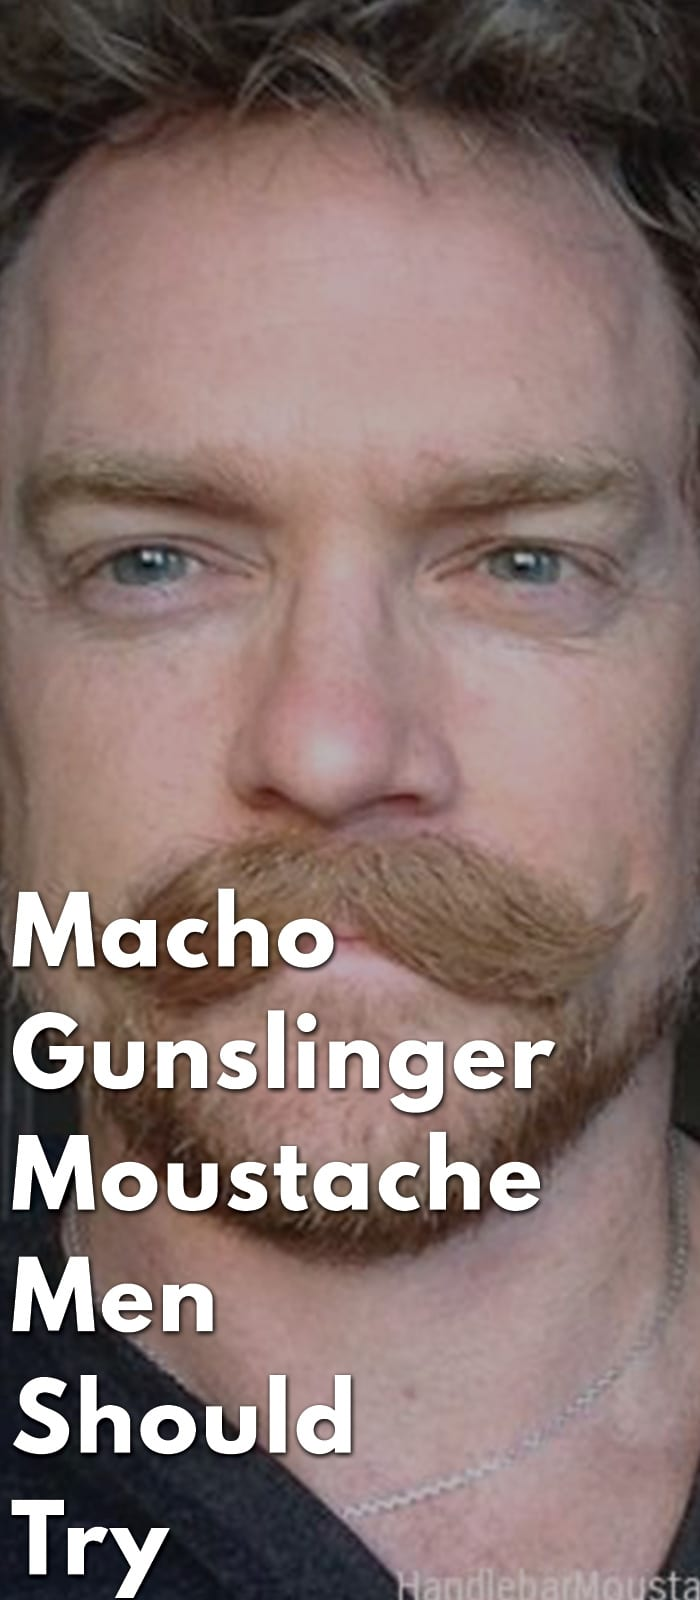 Macho-Gunslinger-Moustache-Men-Should-Try-.